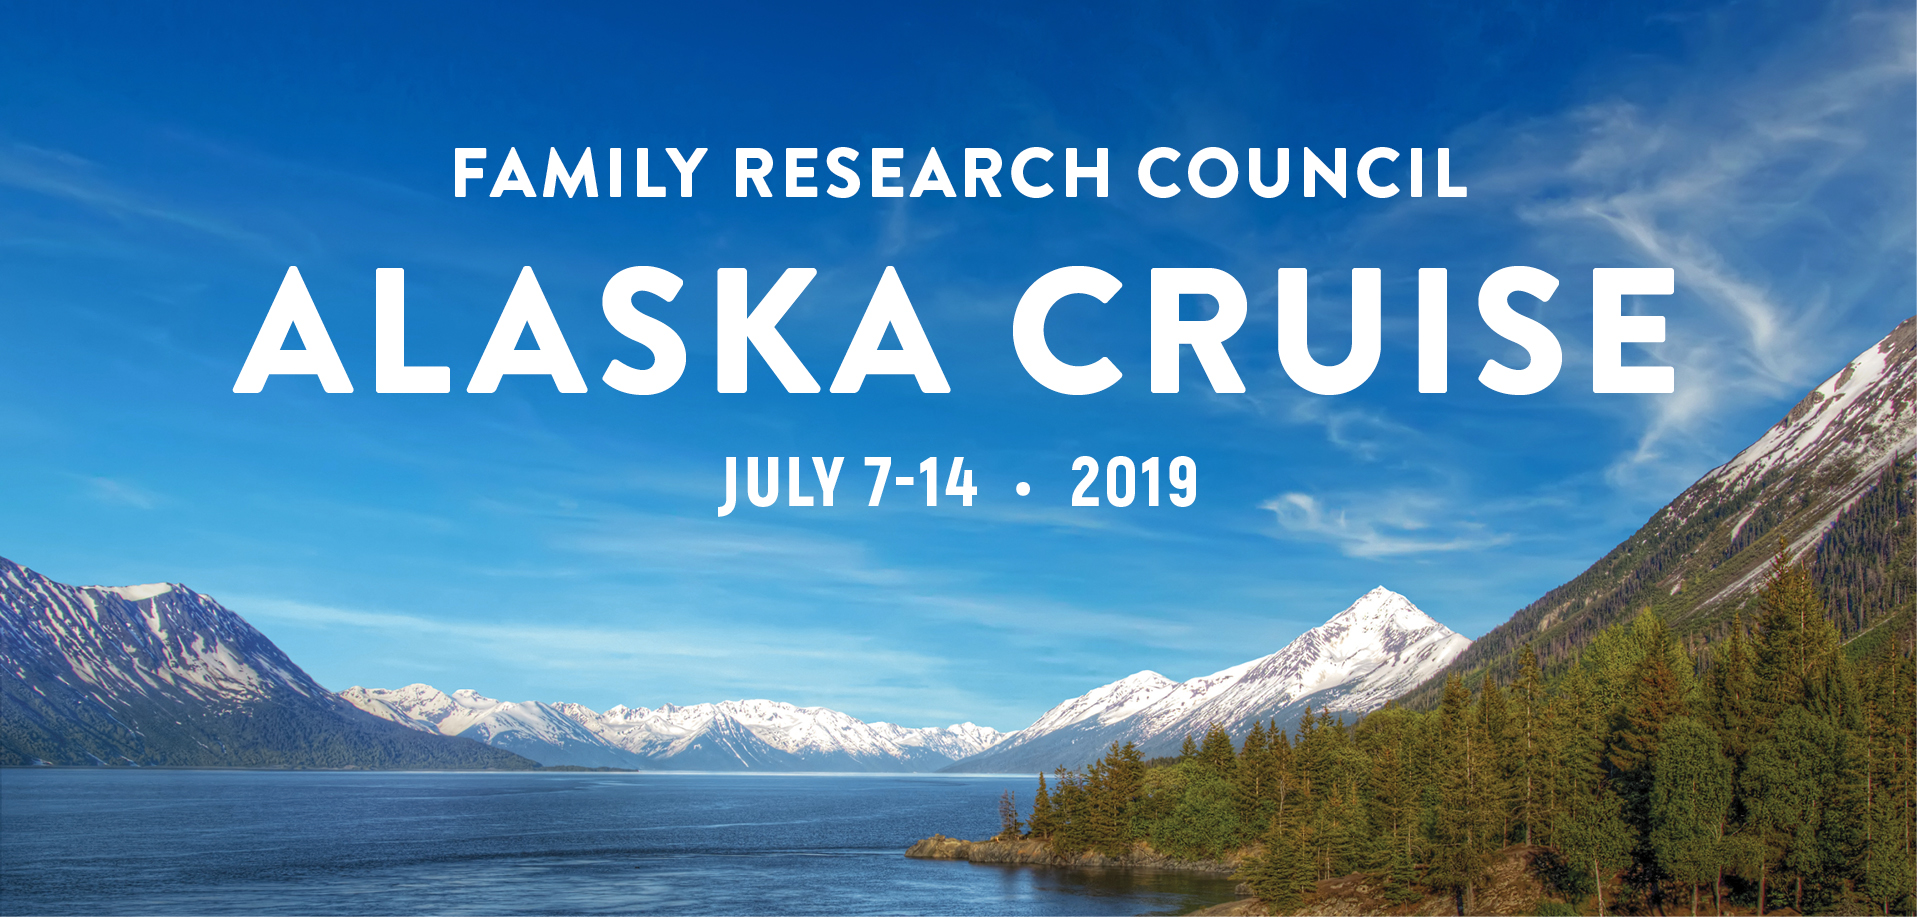 Take a Christian Cruise with Family Research Council - Christian Cruise to Alaska - July 7 - 14, 2019